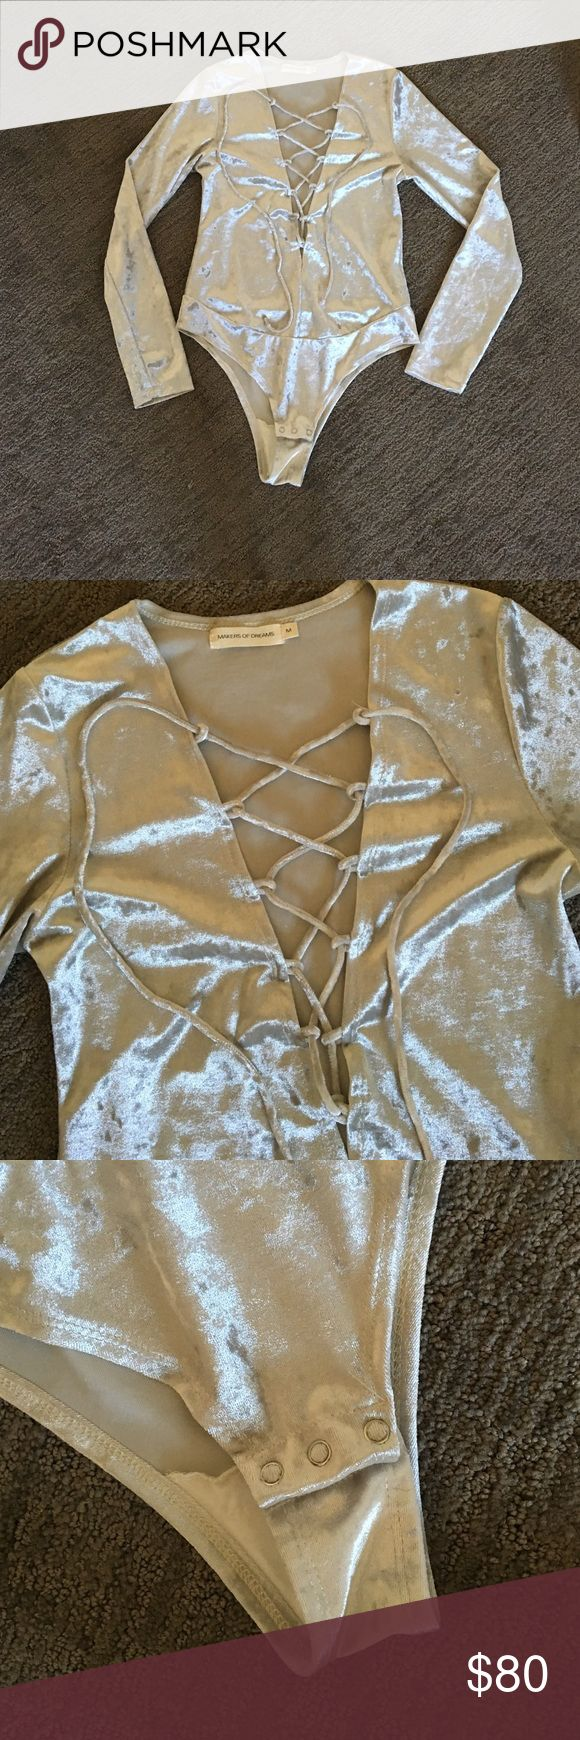 Silver plunging- neckline bodysuit Sexy, crushed velvet-feel leotard. Deep plunging lace-up neck line. Long sleeve with snaps at bottom to open/close. Unworn! Makers of Dreams (indie boutique NYC) Other